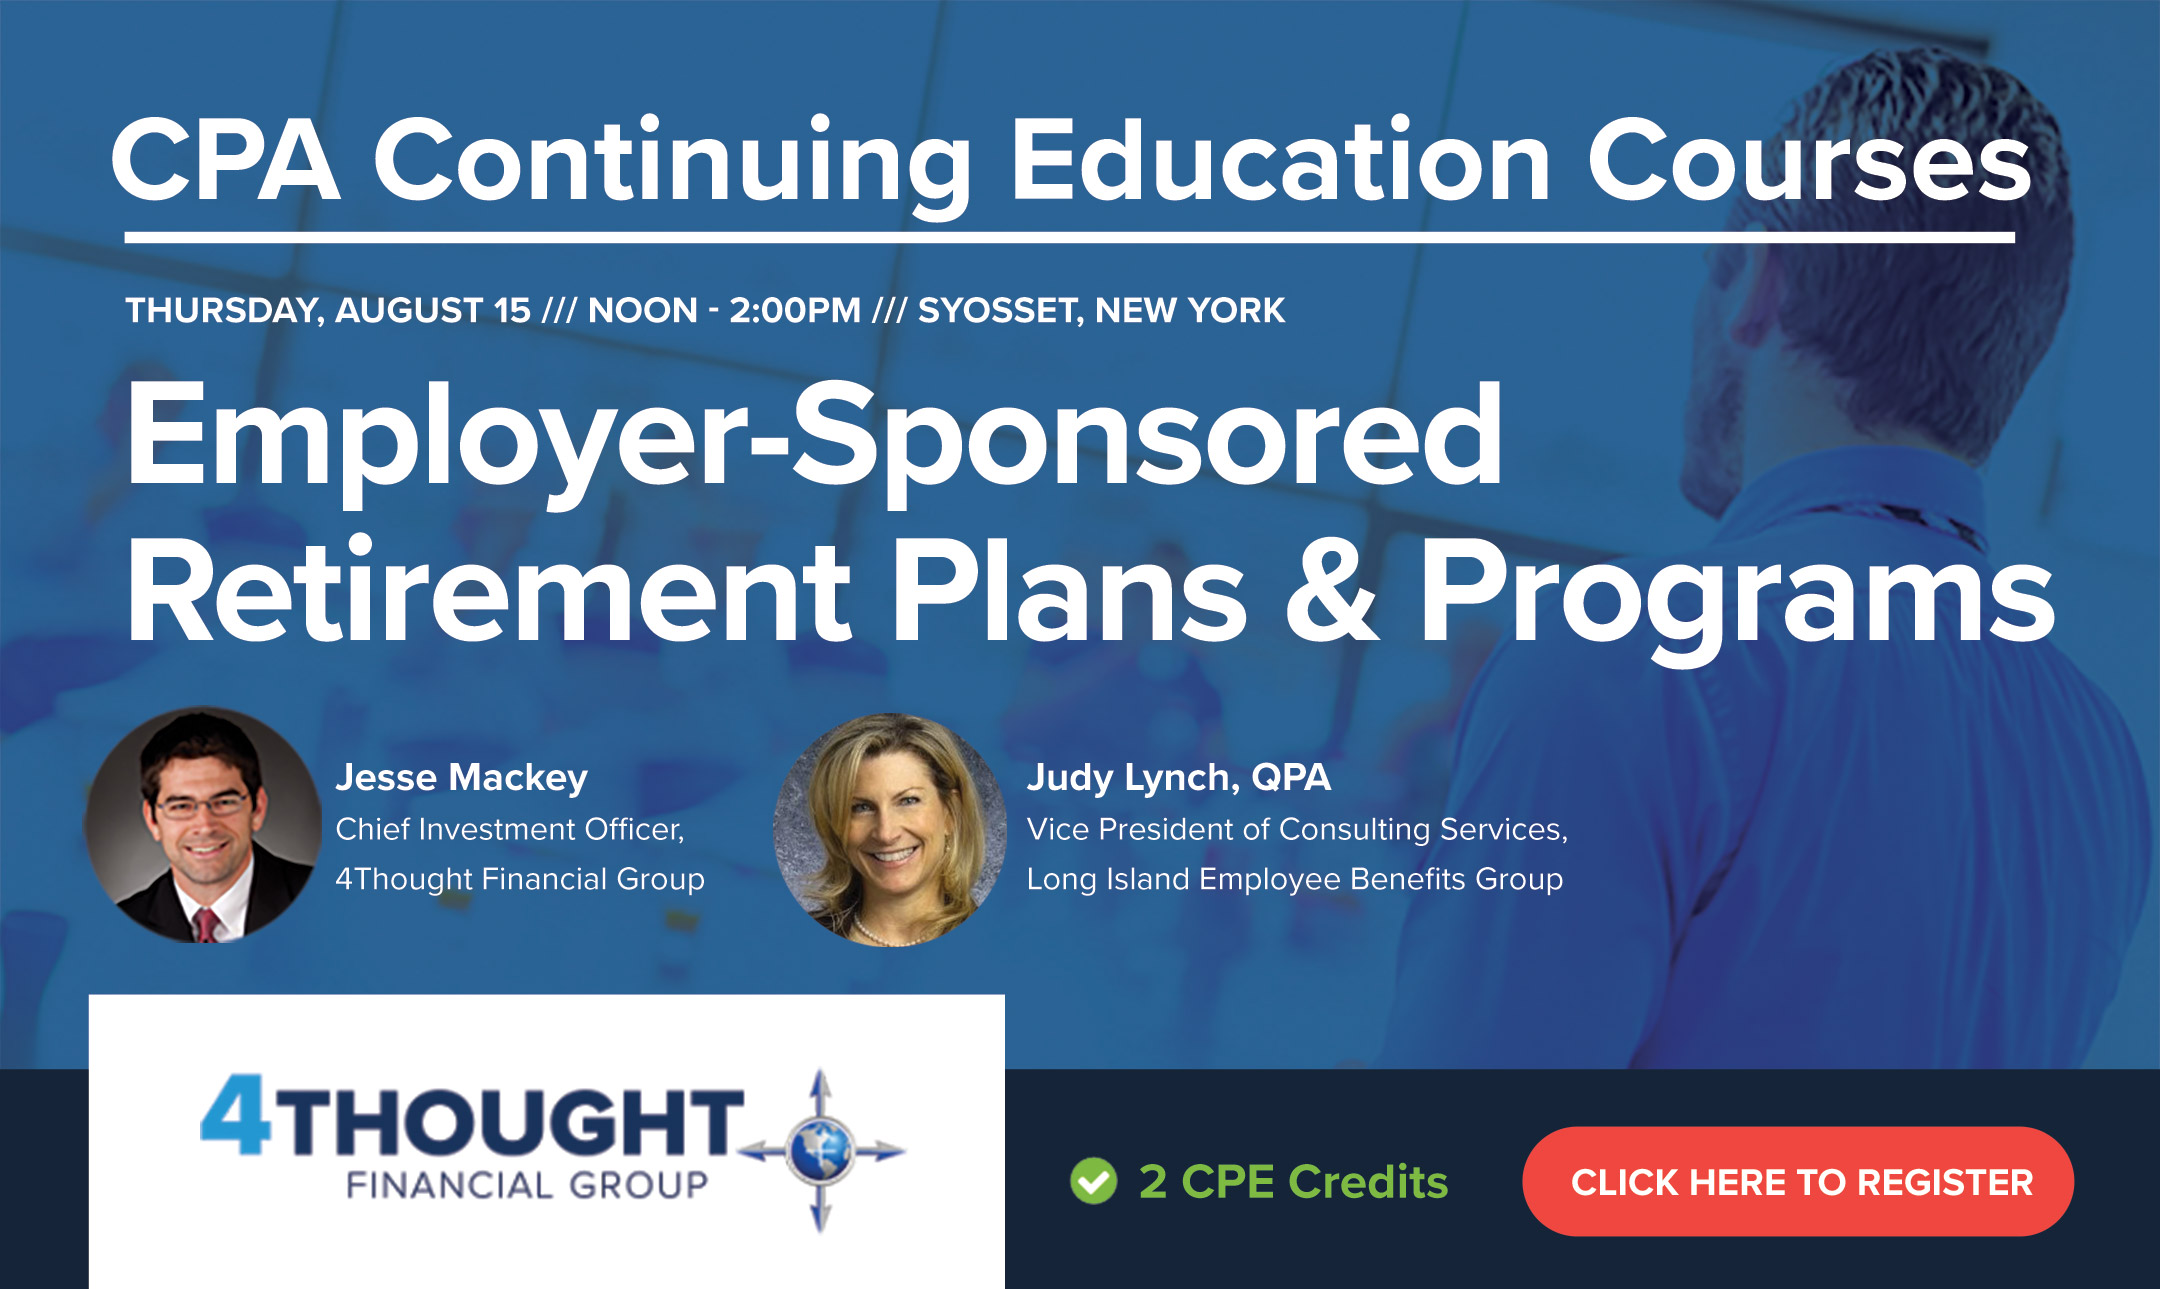 CPA Continuing Education Course: Employer-Sponsored Retirement Plans & Programs